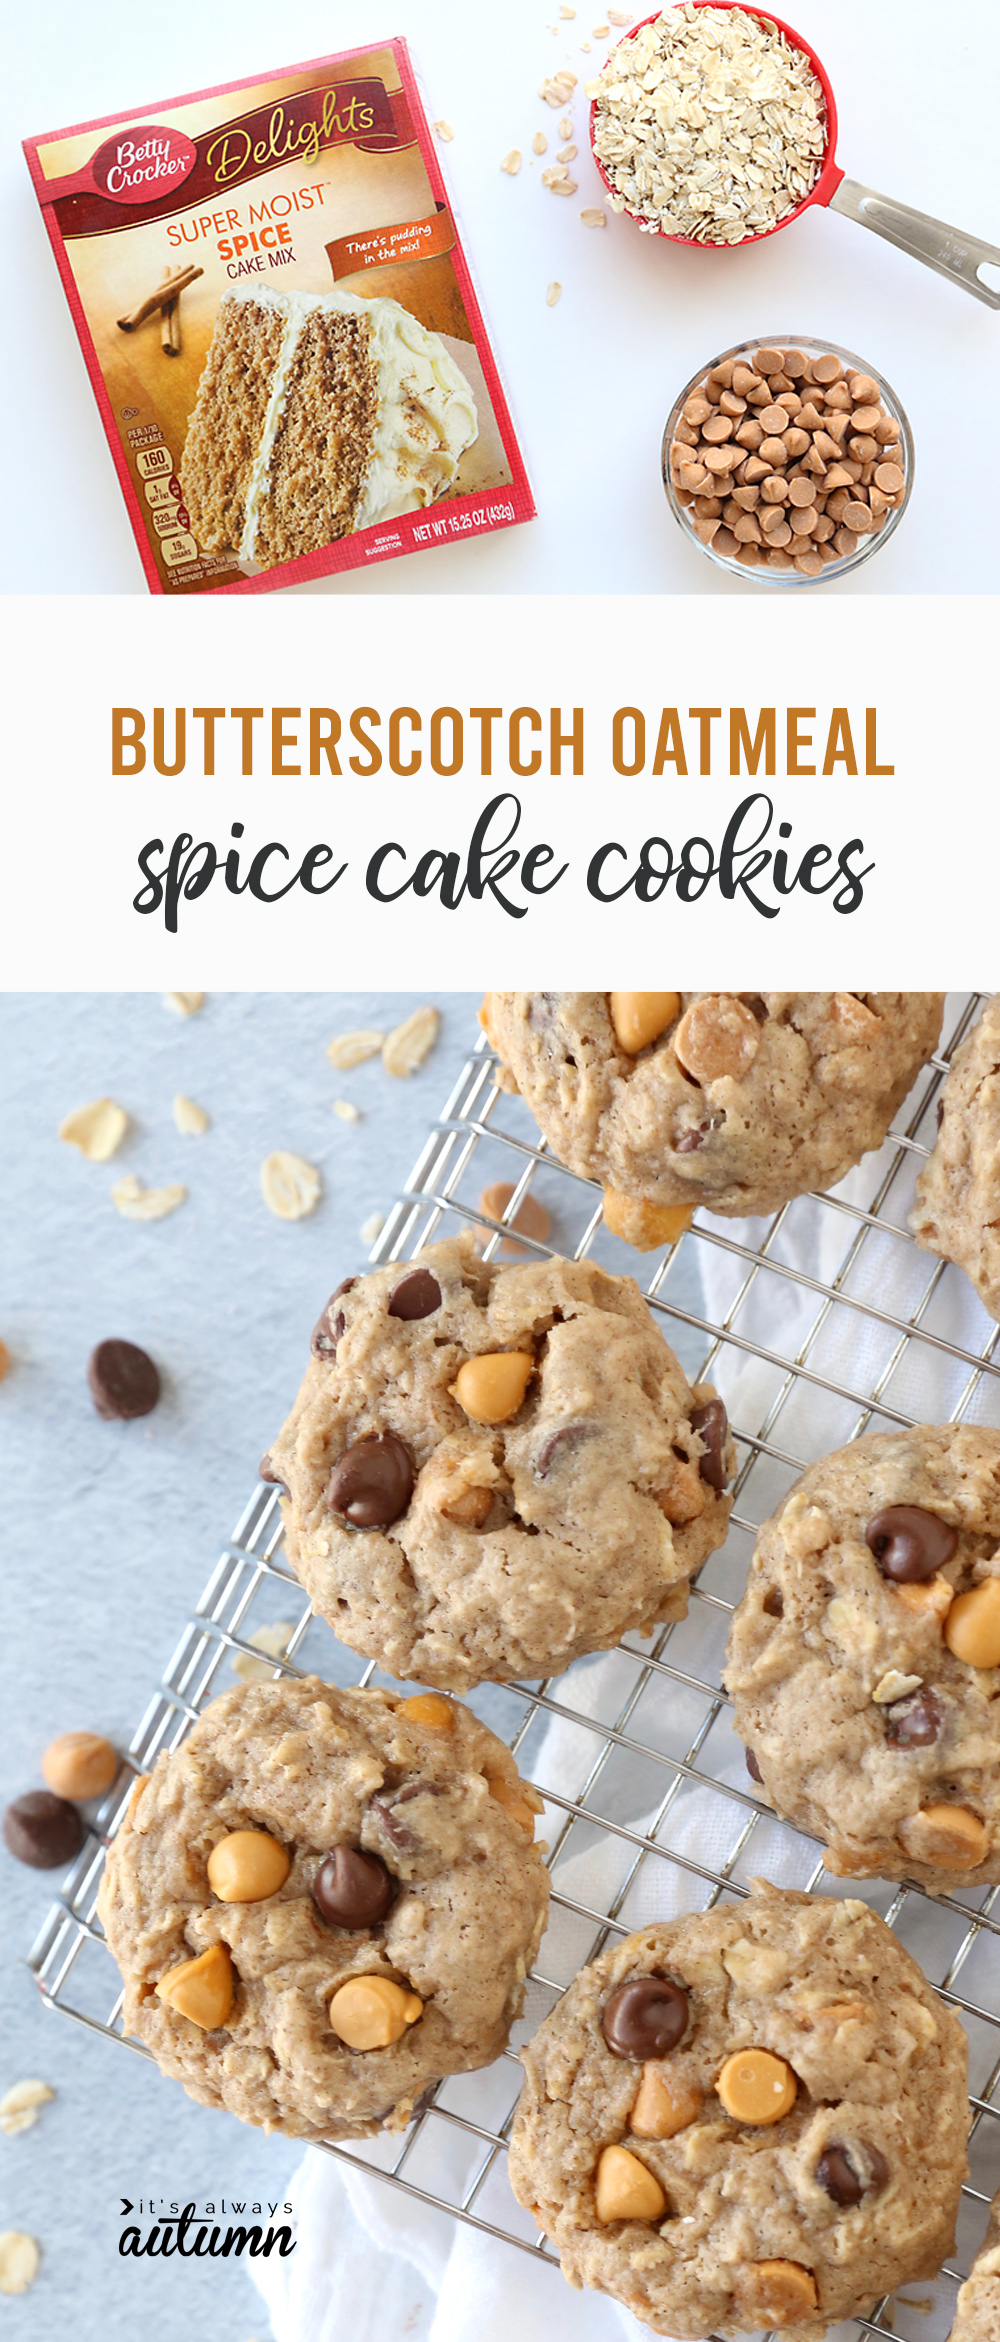 Butterscotch oatmeal spice cookies are crazy delicious!